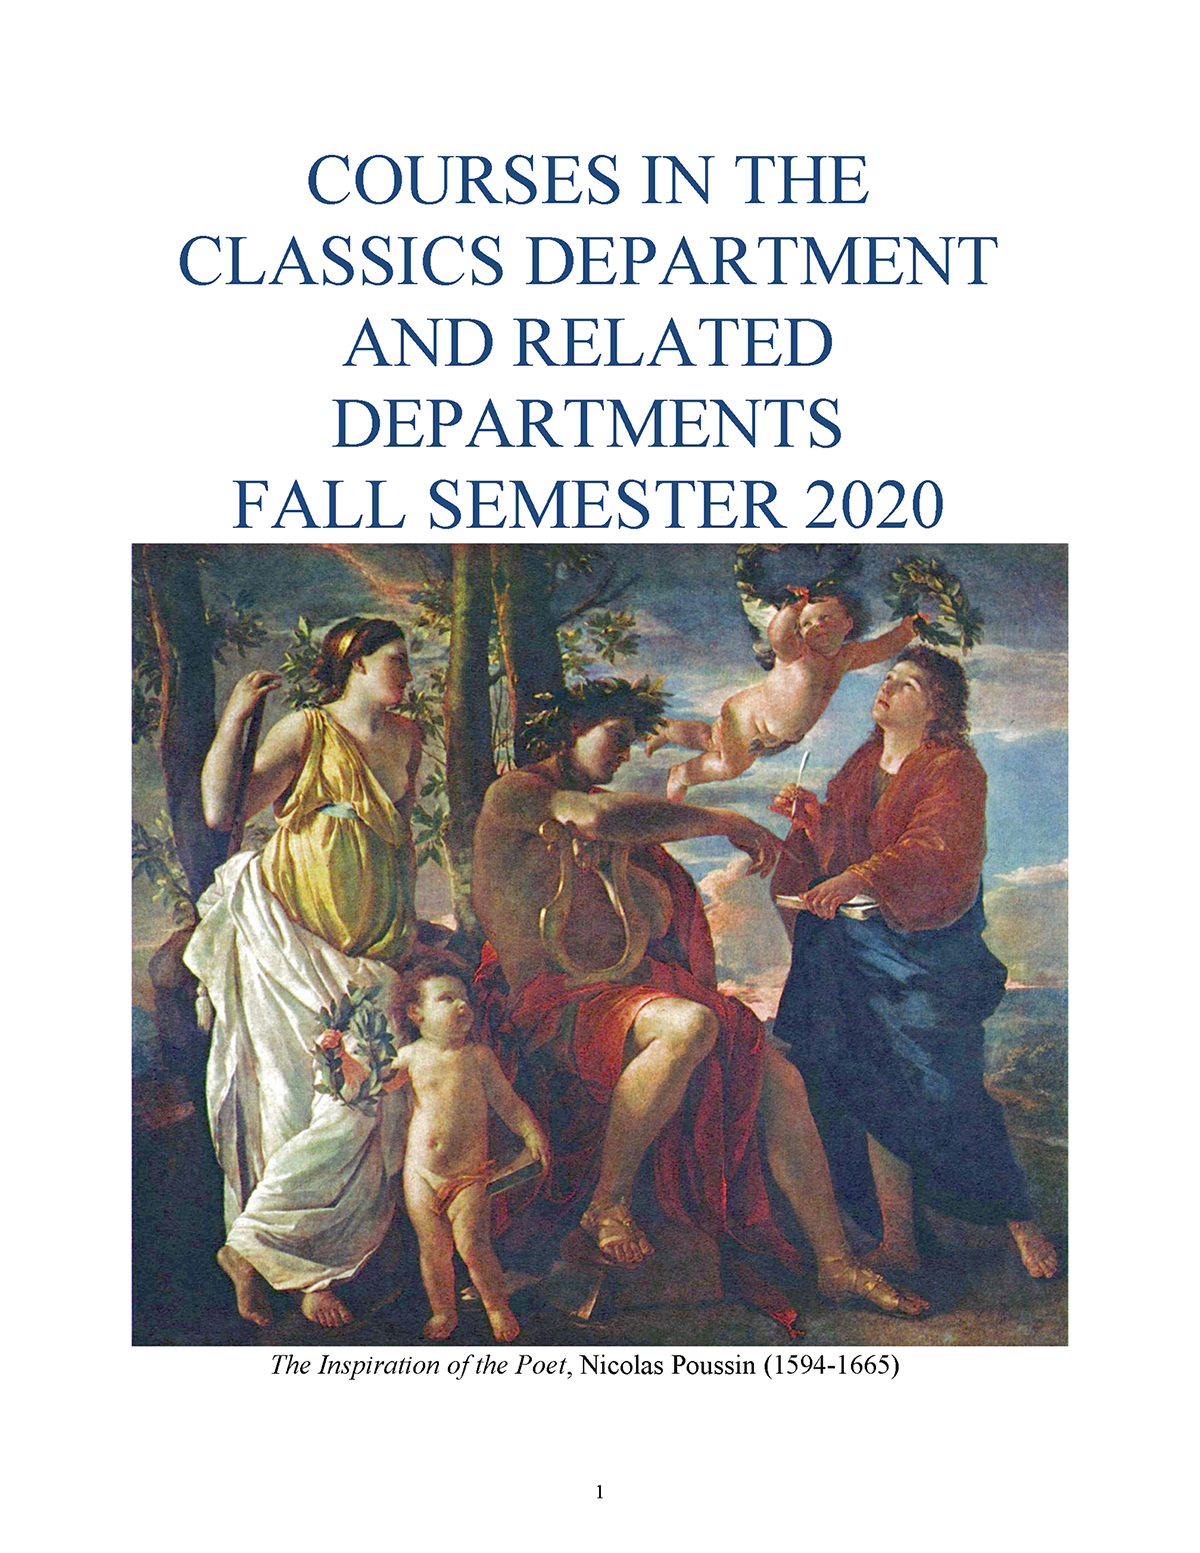 Fall 2020 Classics Course Catalog Cover